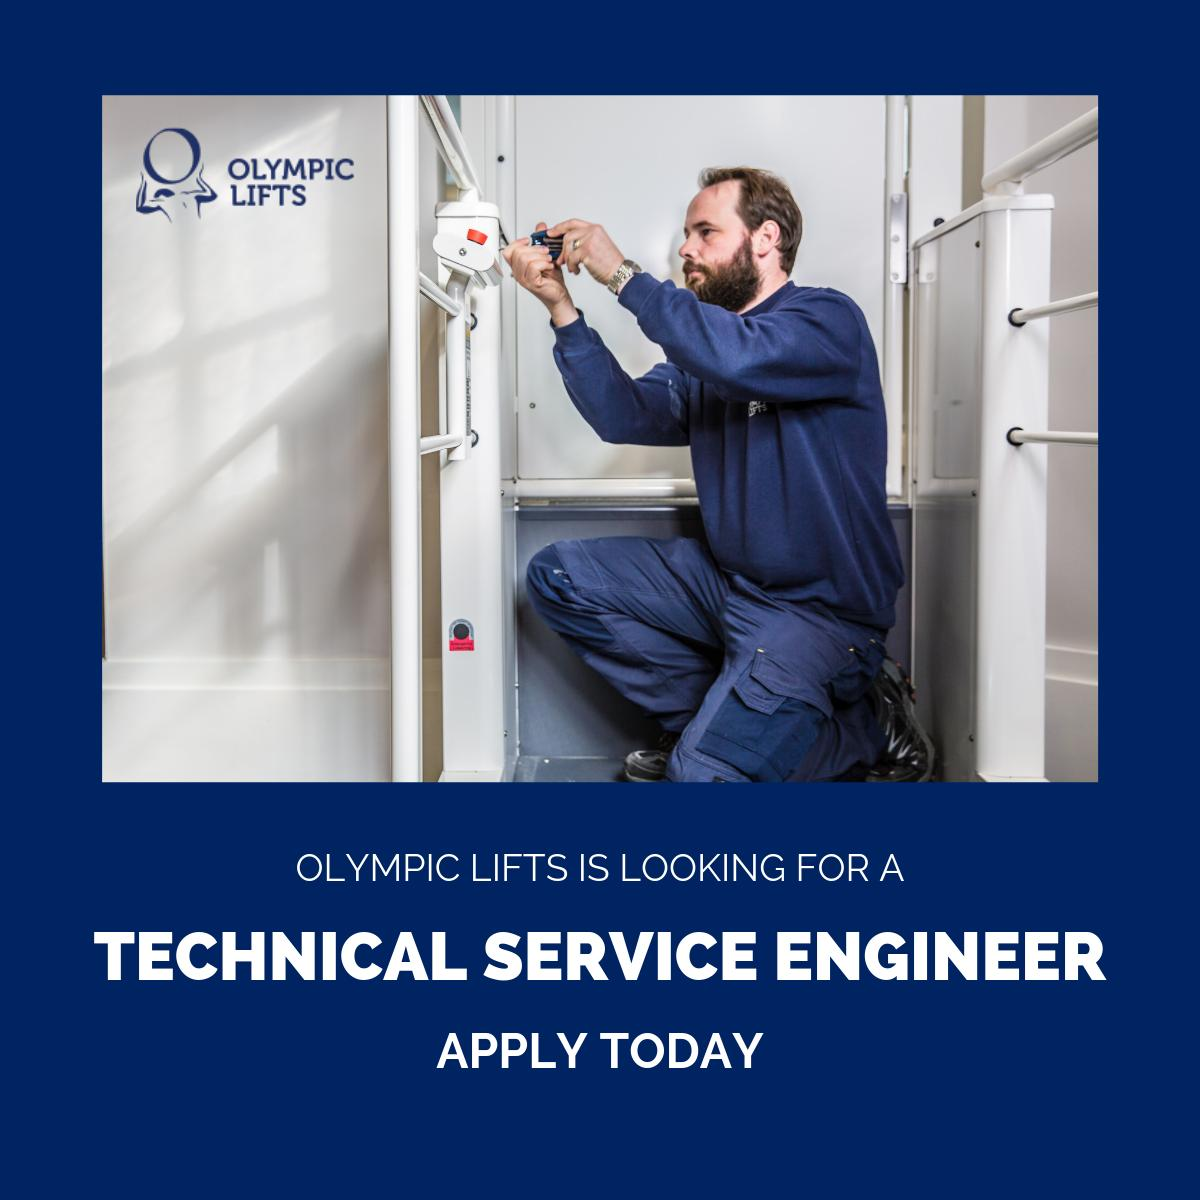 #JobOpportunity 💼  We're looking for a Technical Service Engineer to join our expanding team! Find out more about the role and how to apply here - http://bit.ly/2XkOhSf